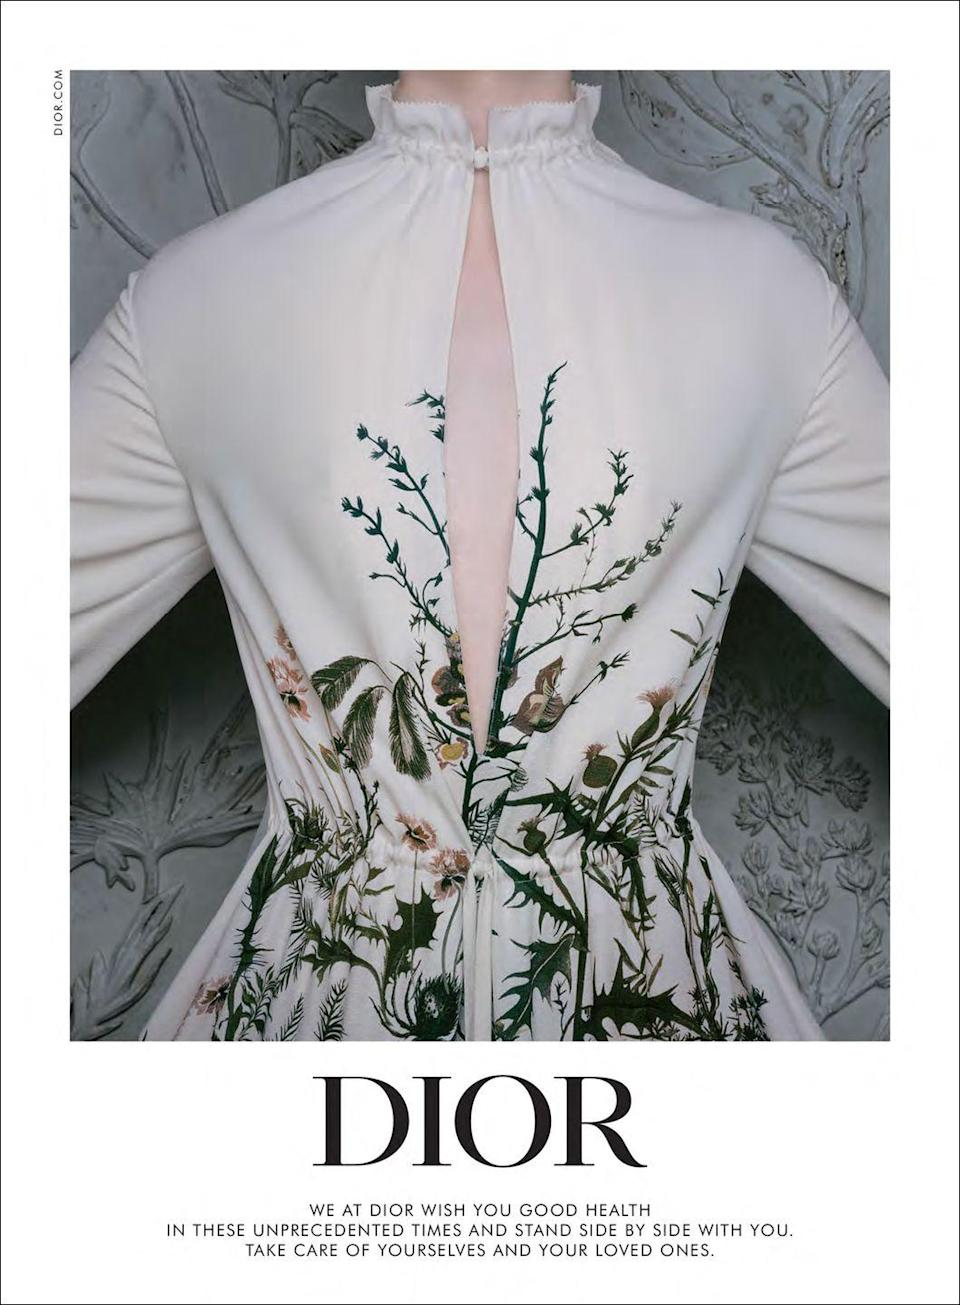 <p>We at Dior wish you good health in these unprecedented times and stand side by side with you. Take care of yourselves and your loved ones.</p>